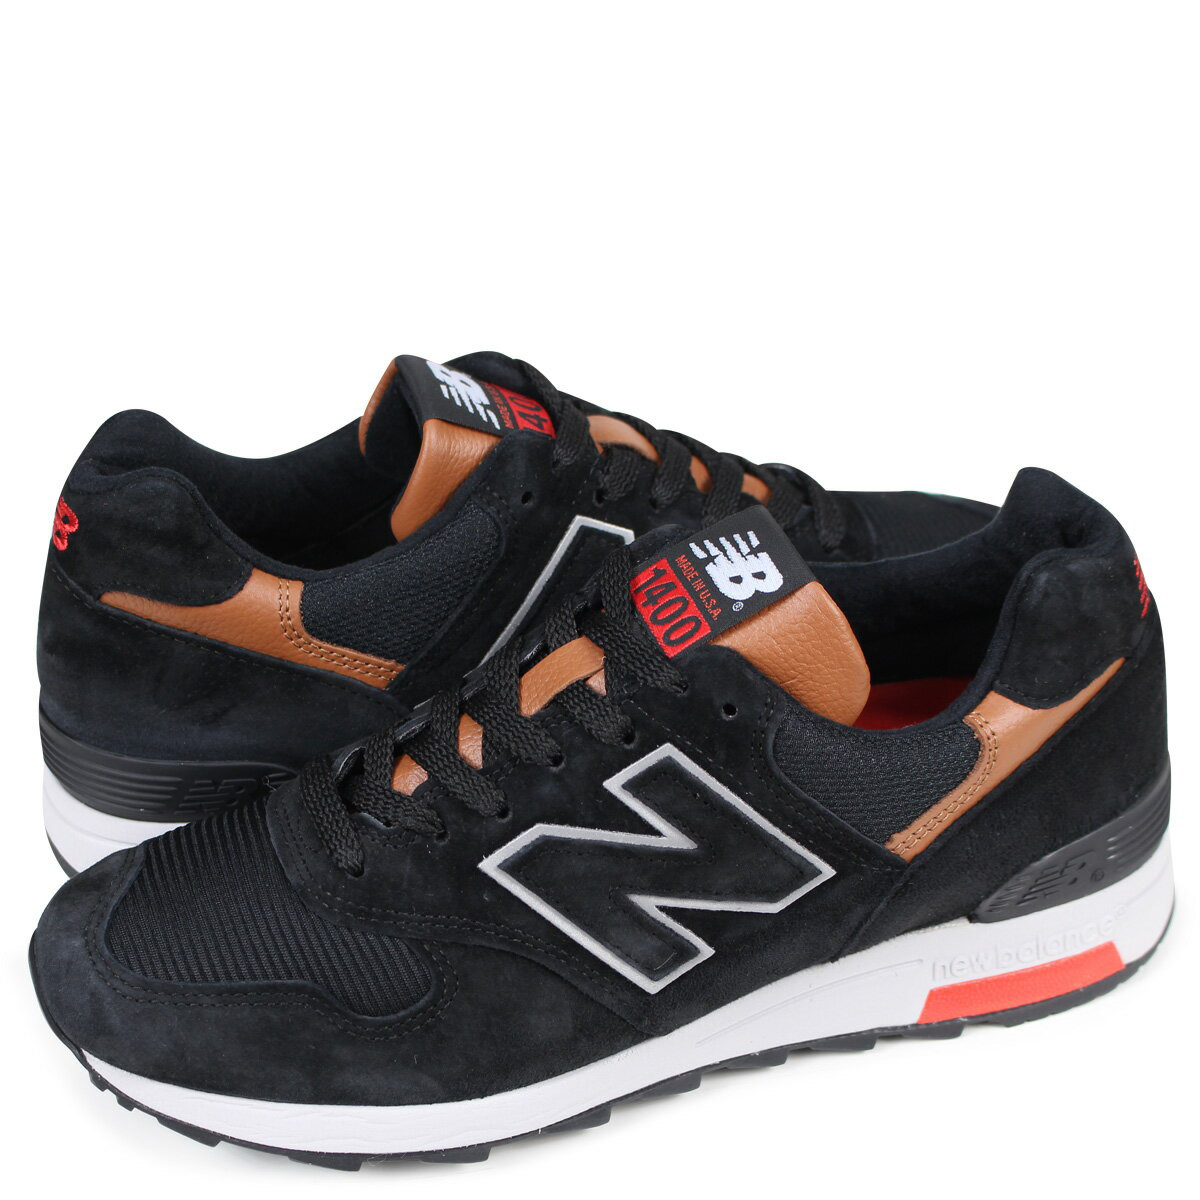 detailed look d3b10 5d98e new balance M1400MC New Balance 1400 men's sneakers D Wise MADE IN USA  black [183]